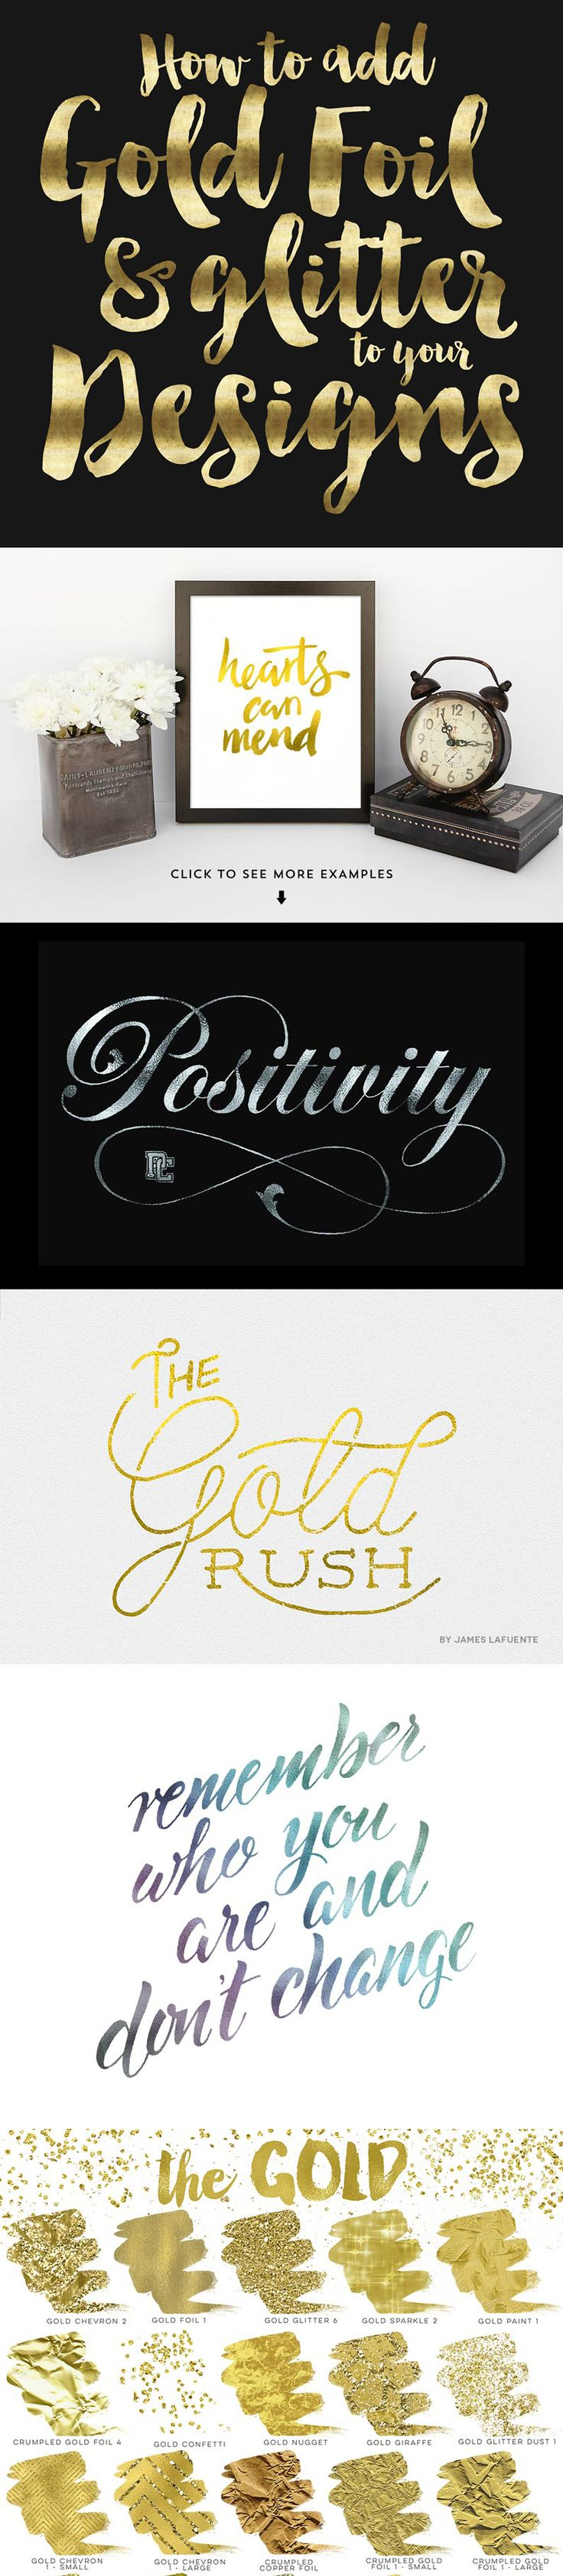 How to add gold foil and glitter to your designs and brush script fonts.